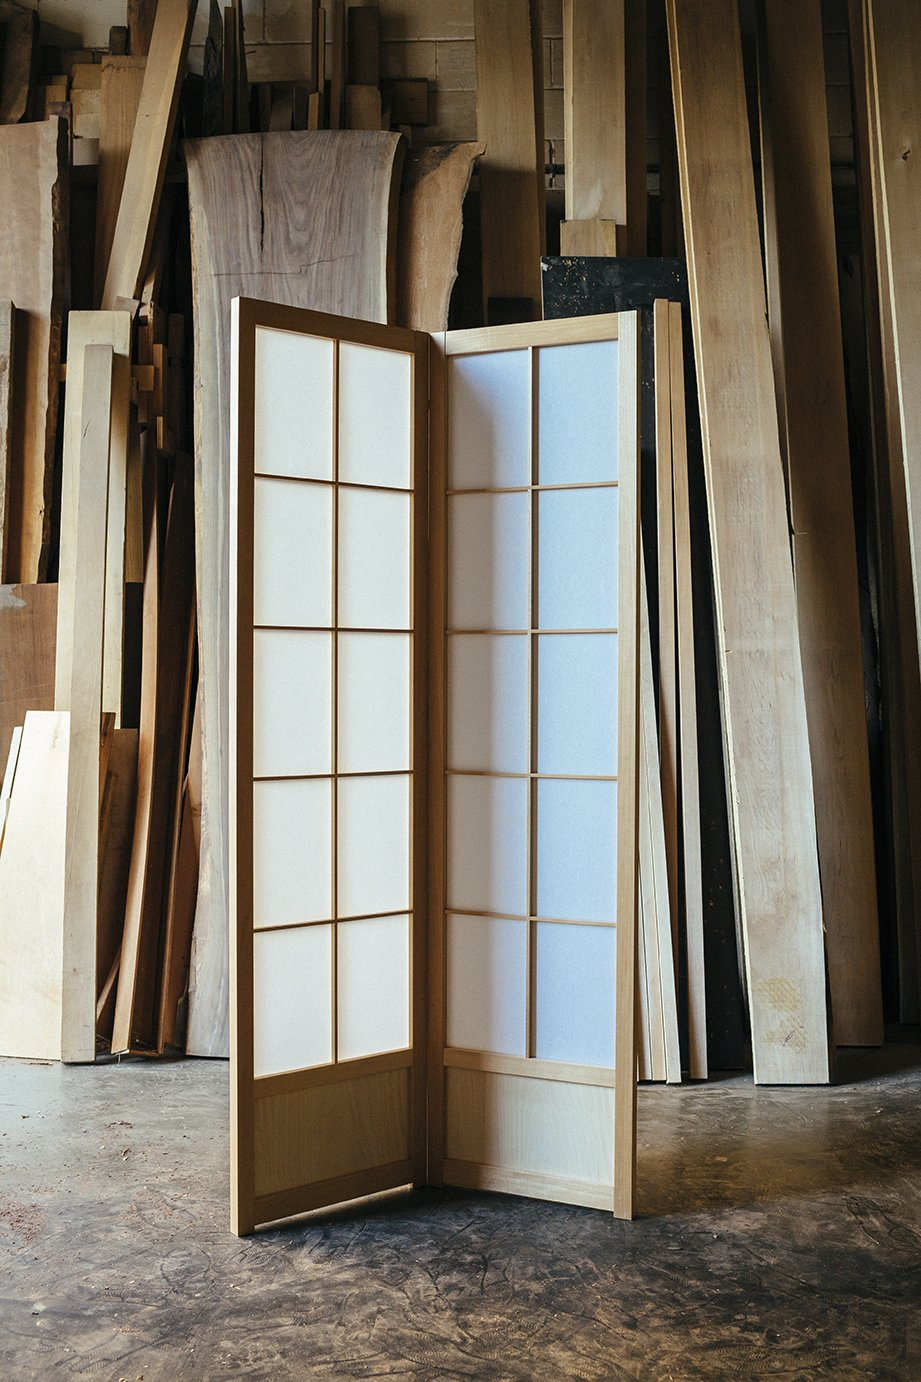 The Hanafusas' specialty is the double-sided shoji, which has a removable second frame that sandwiches the paper. The style has the added benefit of being sturdier than classic single-sided shojis. Undivided Attention - Photo 7 of 7